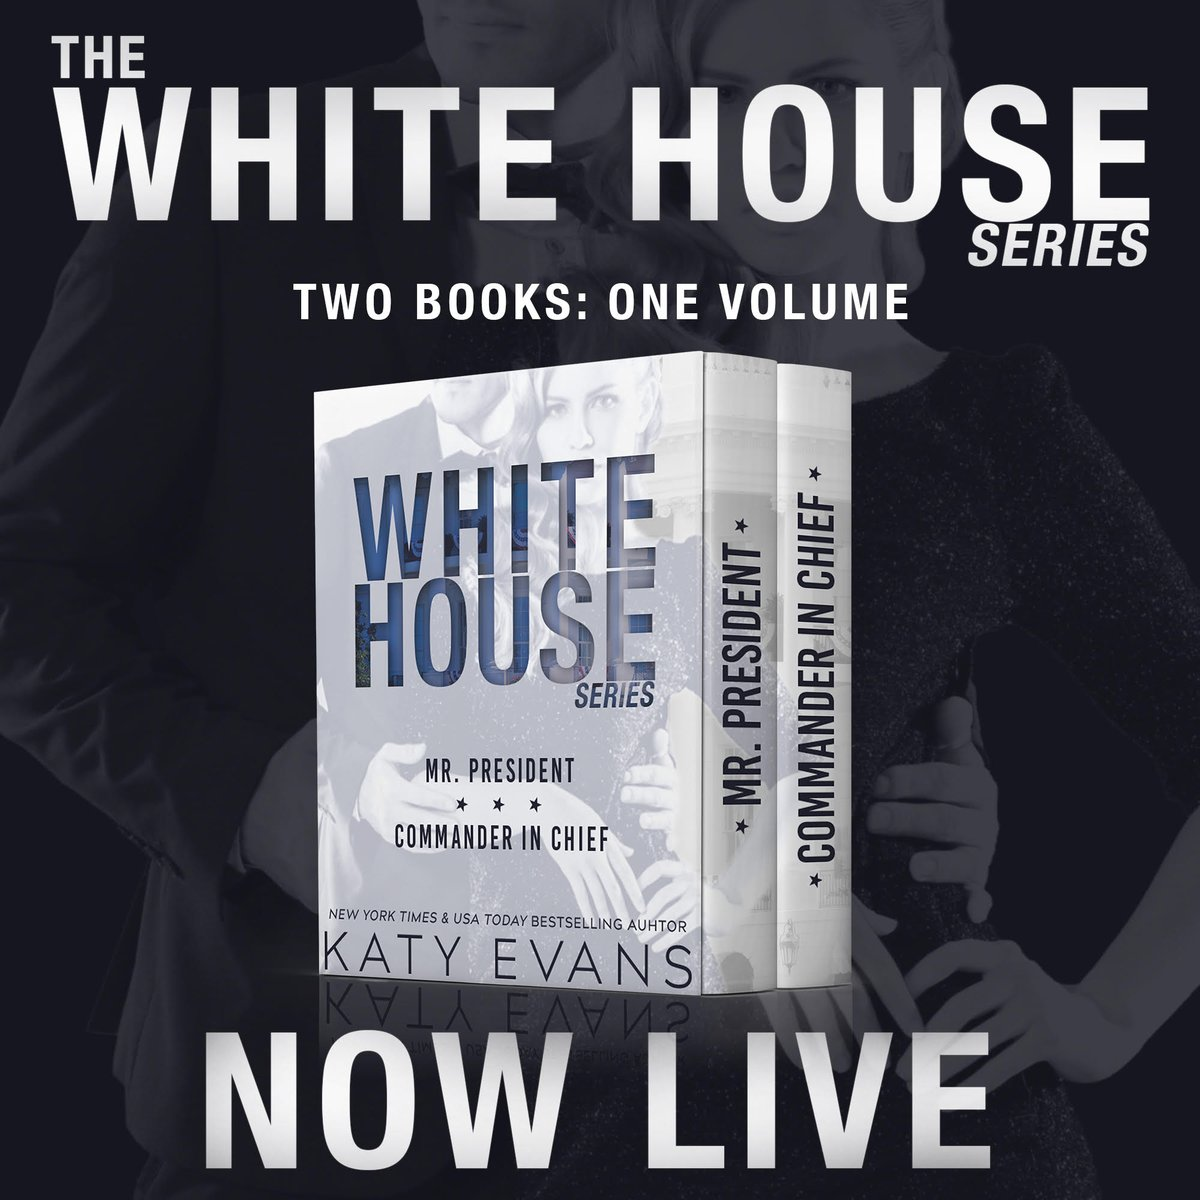 White House Boxed Set: Now Live